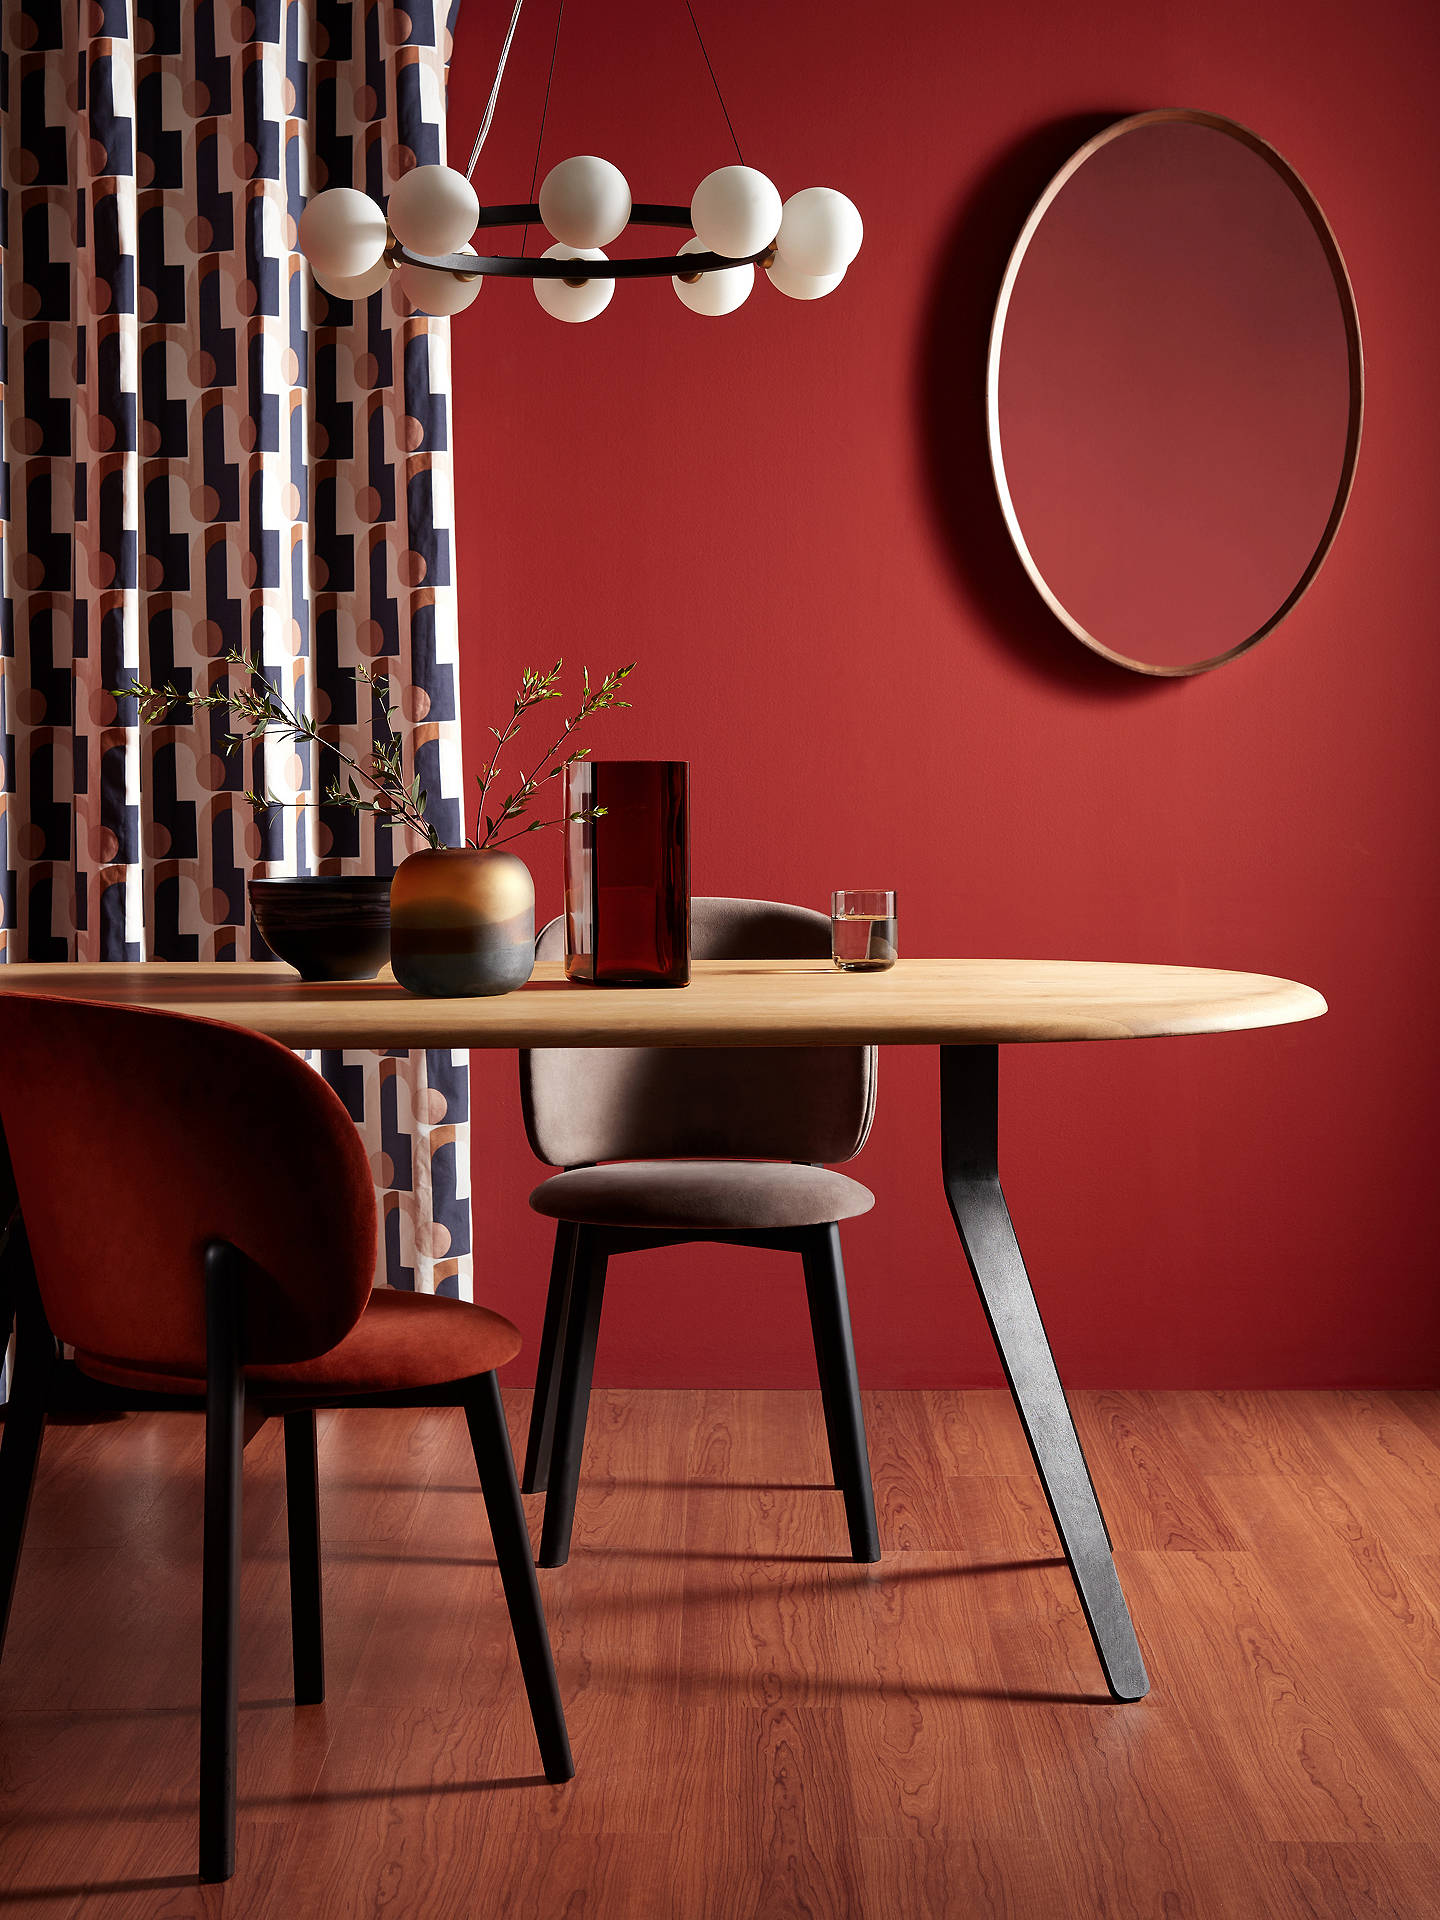 Buy John Lewis & Partners Astrid Oval Mirror, Walnut Wood, 90 x 60cm Online at johnlewis.com